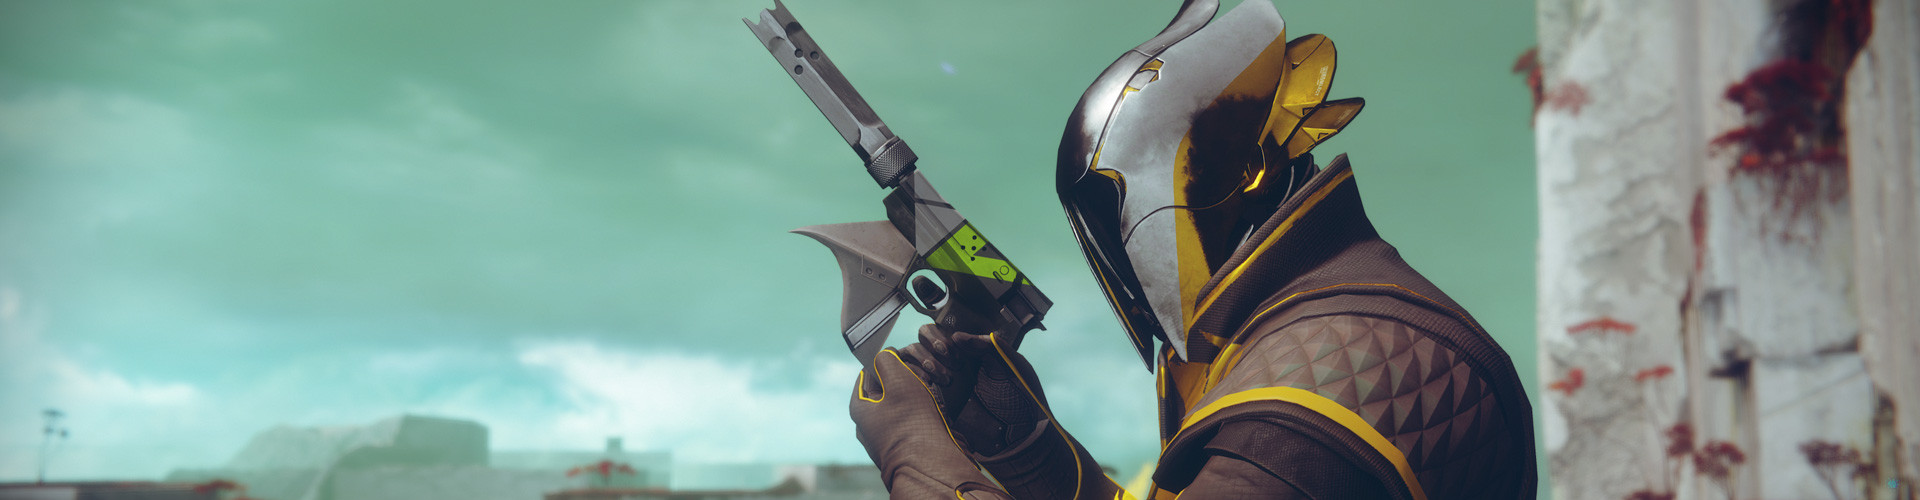 destiny-2-a-z-header.jpg